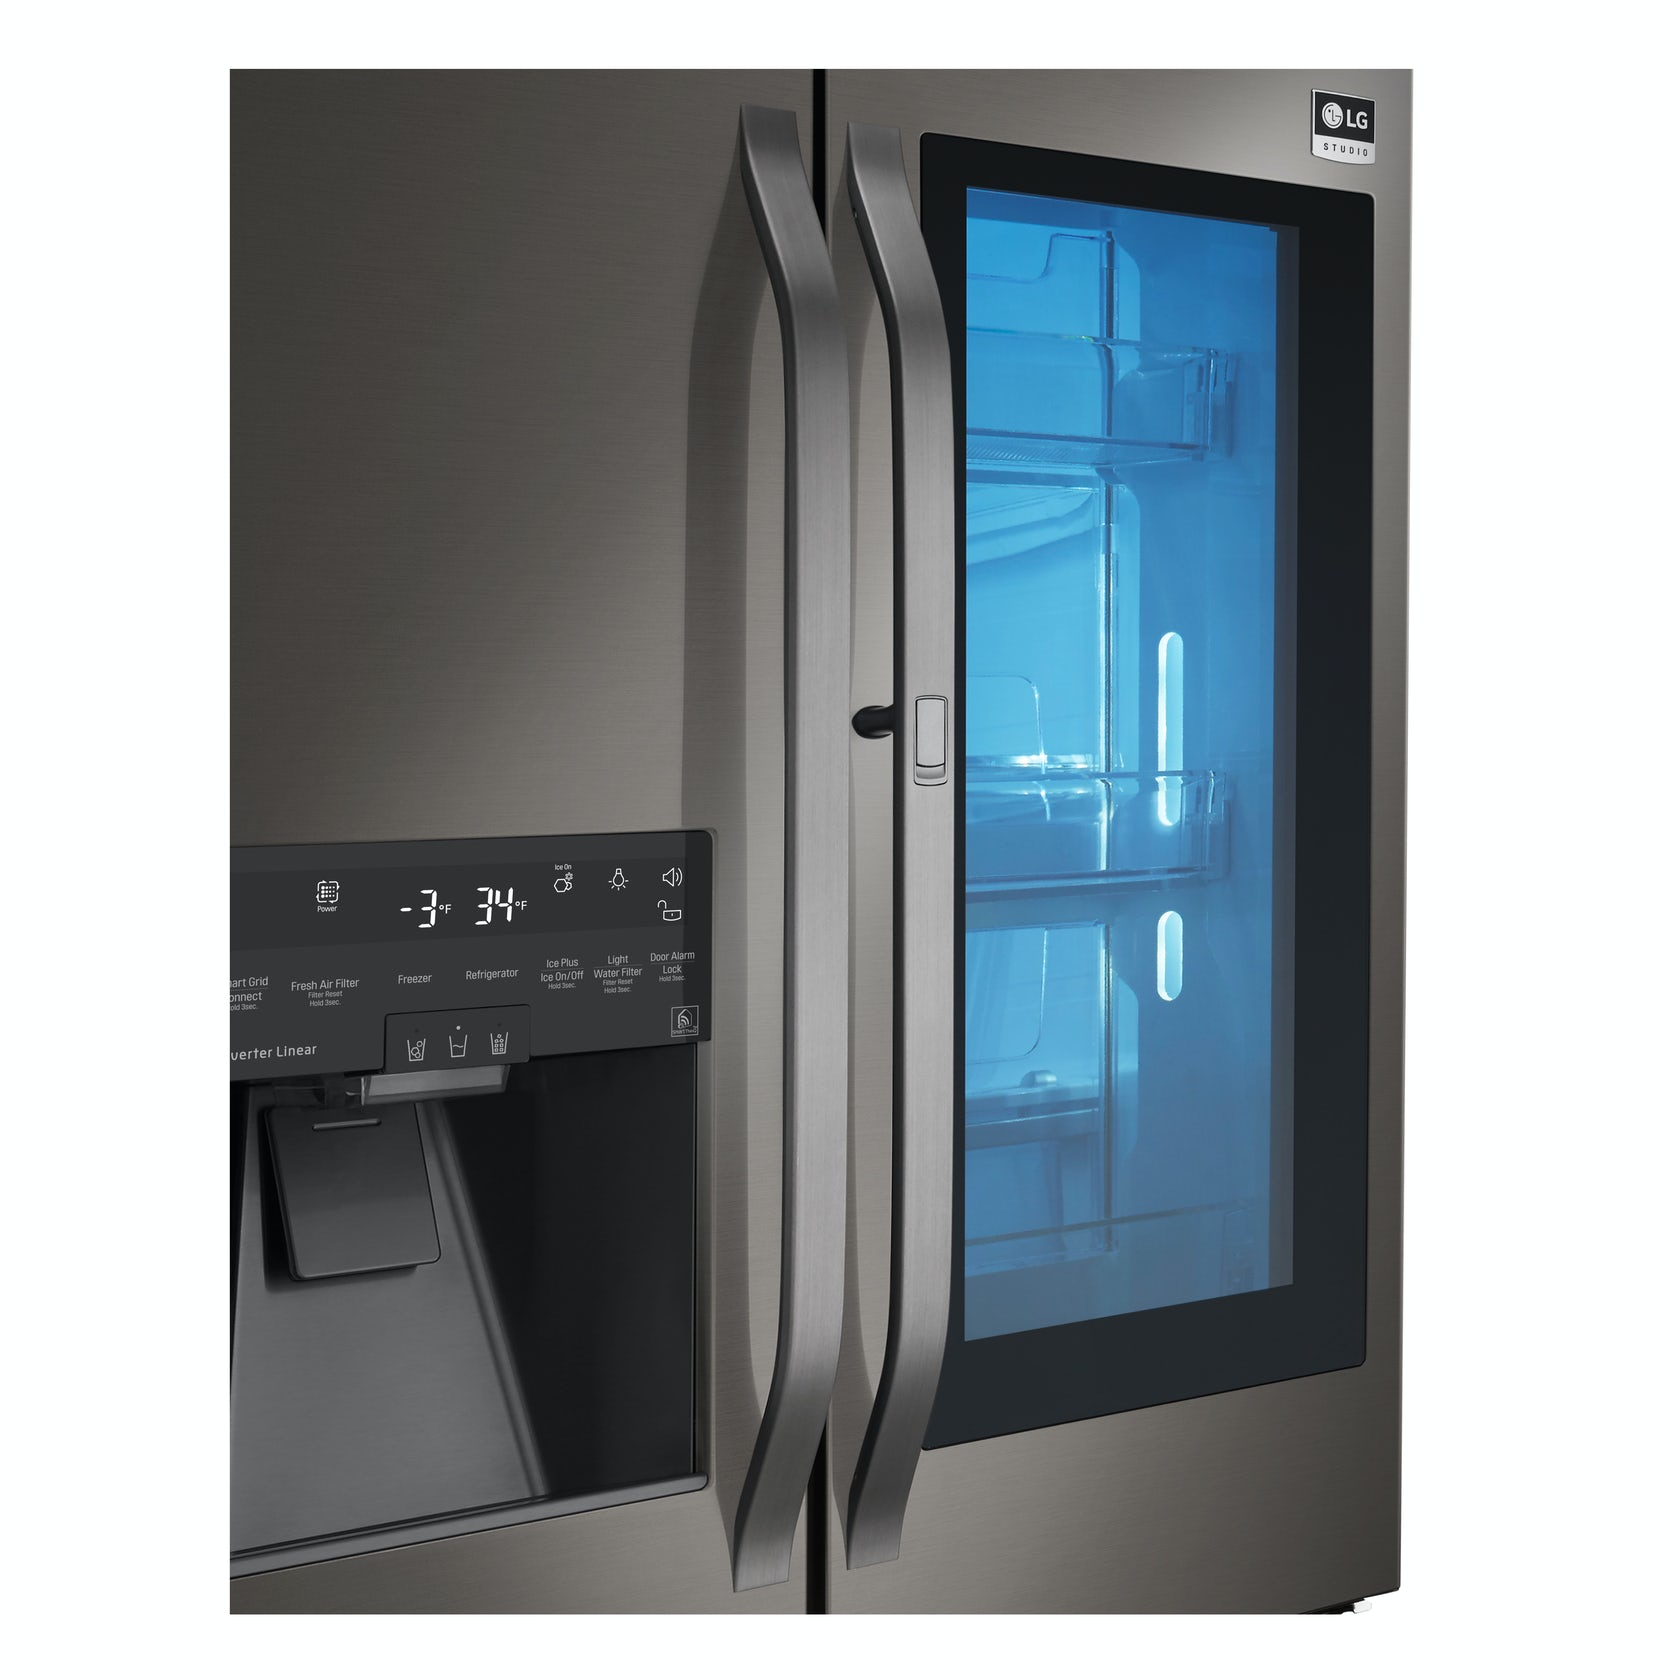 High End Fridges Top Technology And Appliance Trends Of Kbis 2017 Architizer